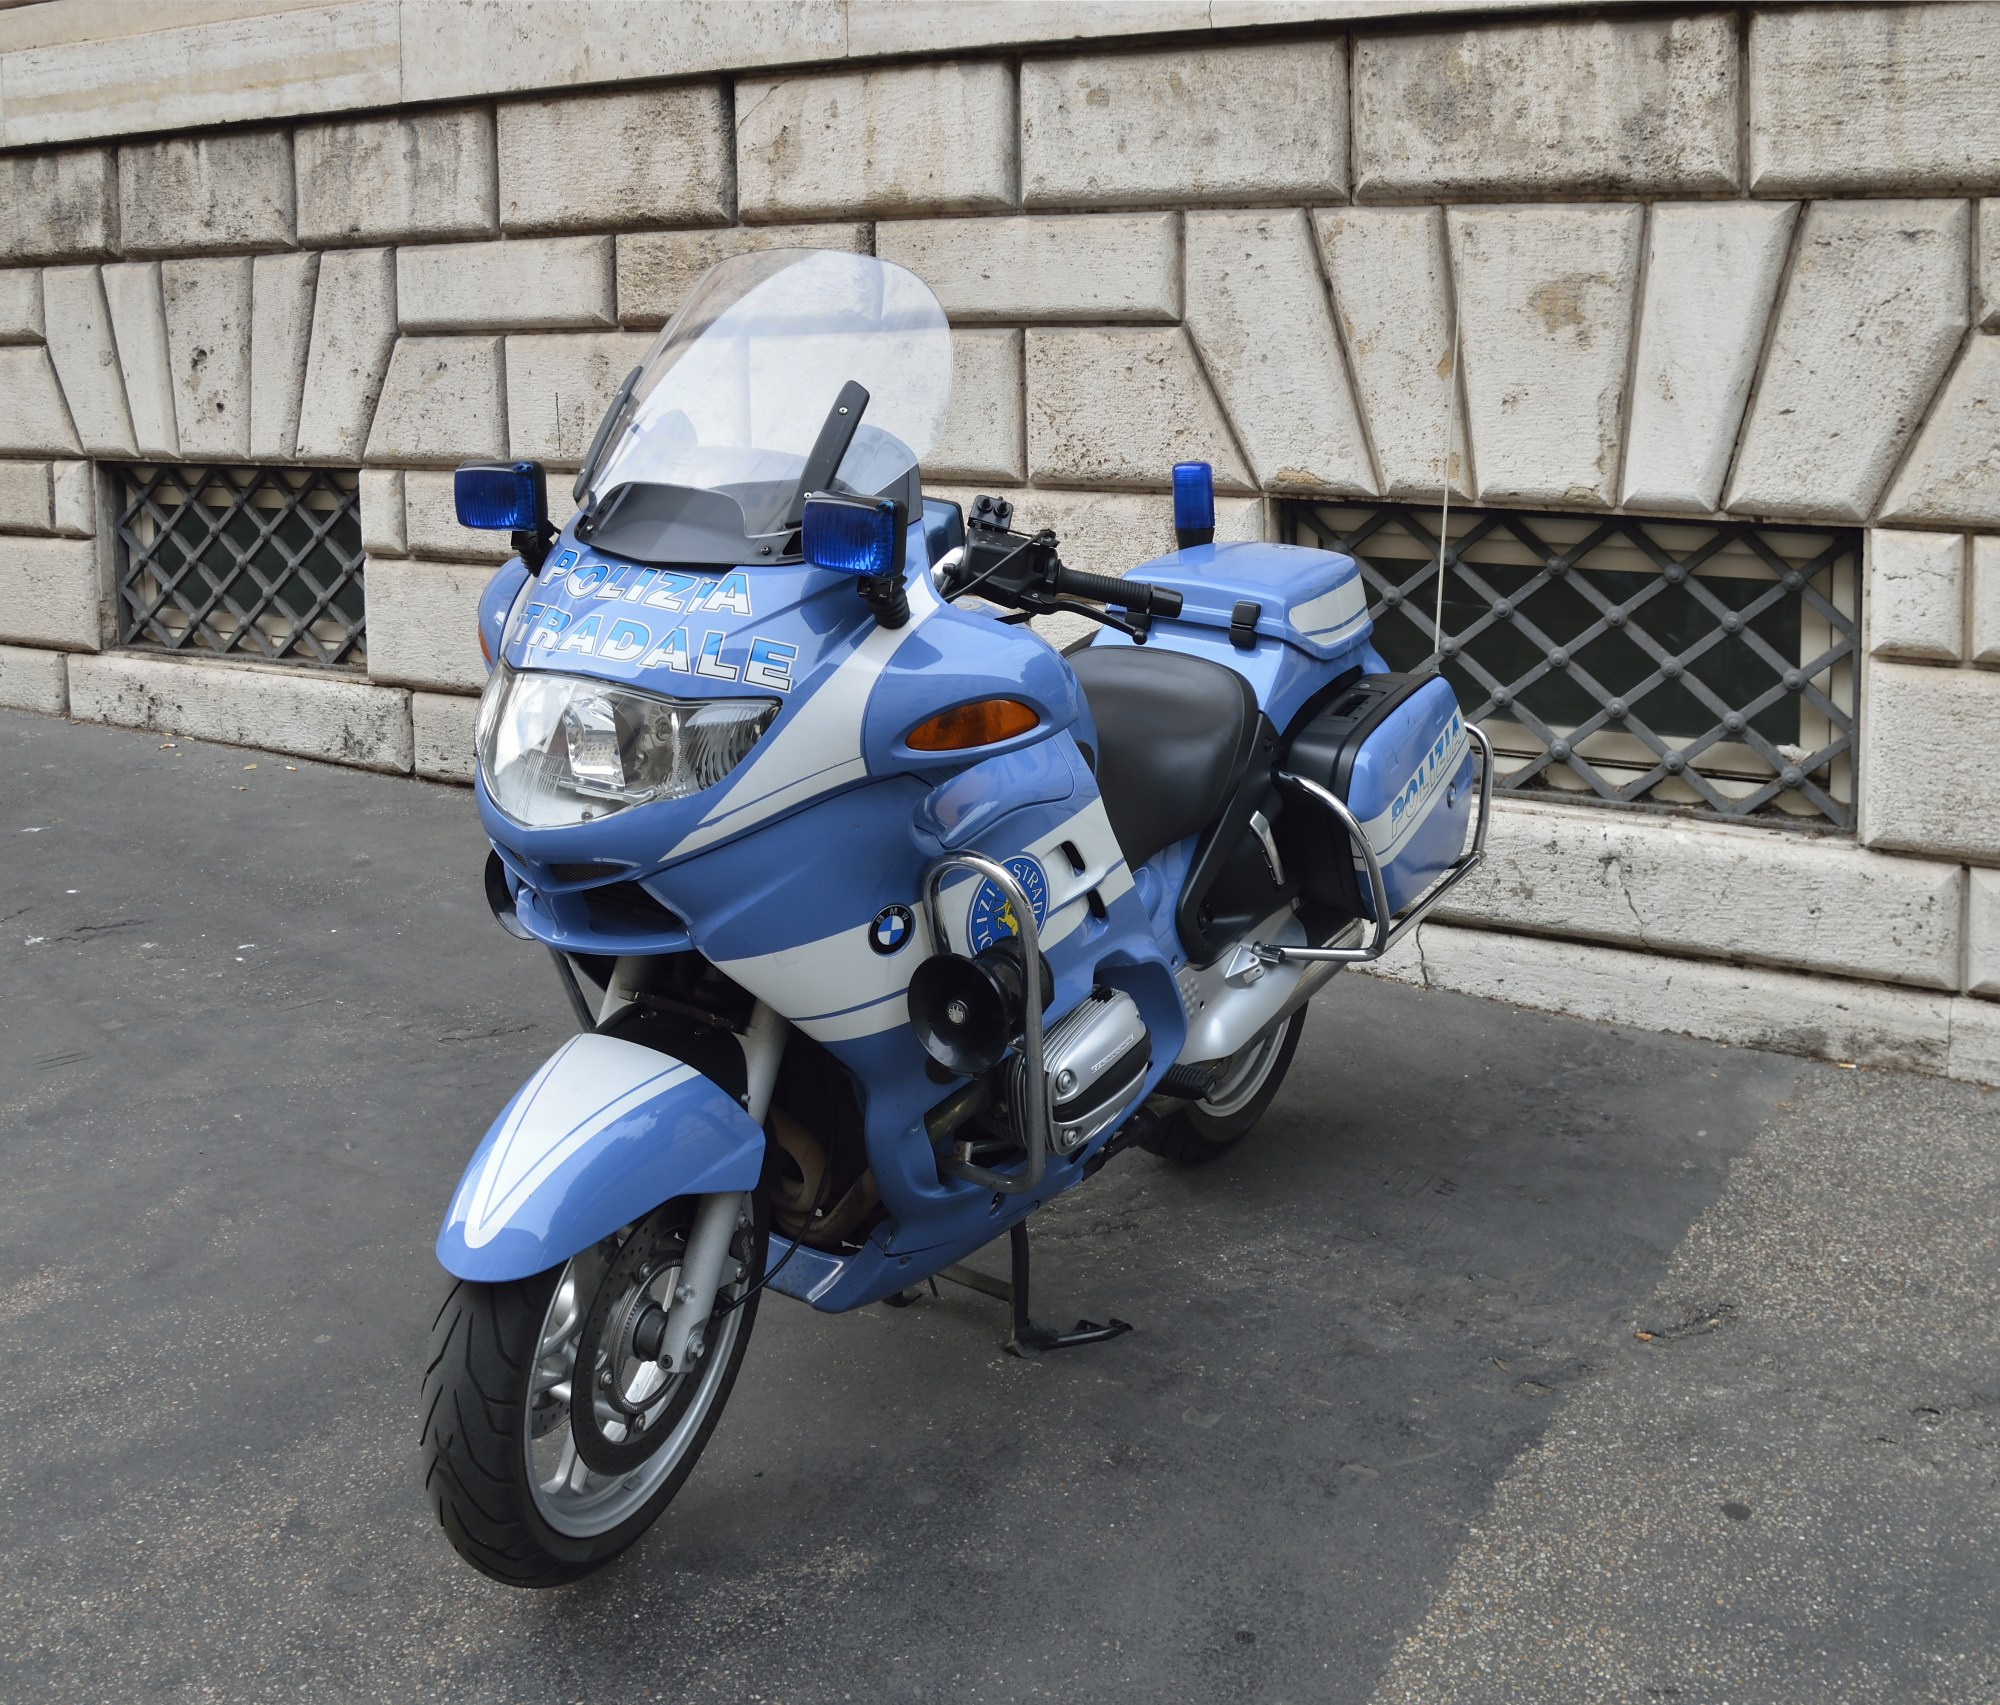 hight resolution of file motorcycle bmw r1150rt of italian police jpg